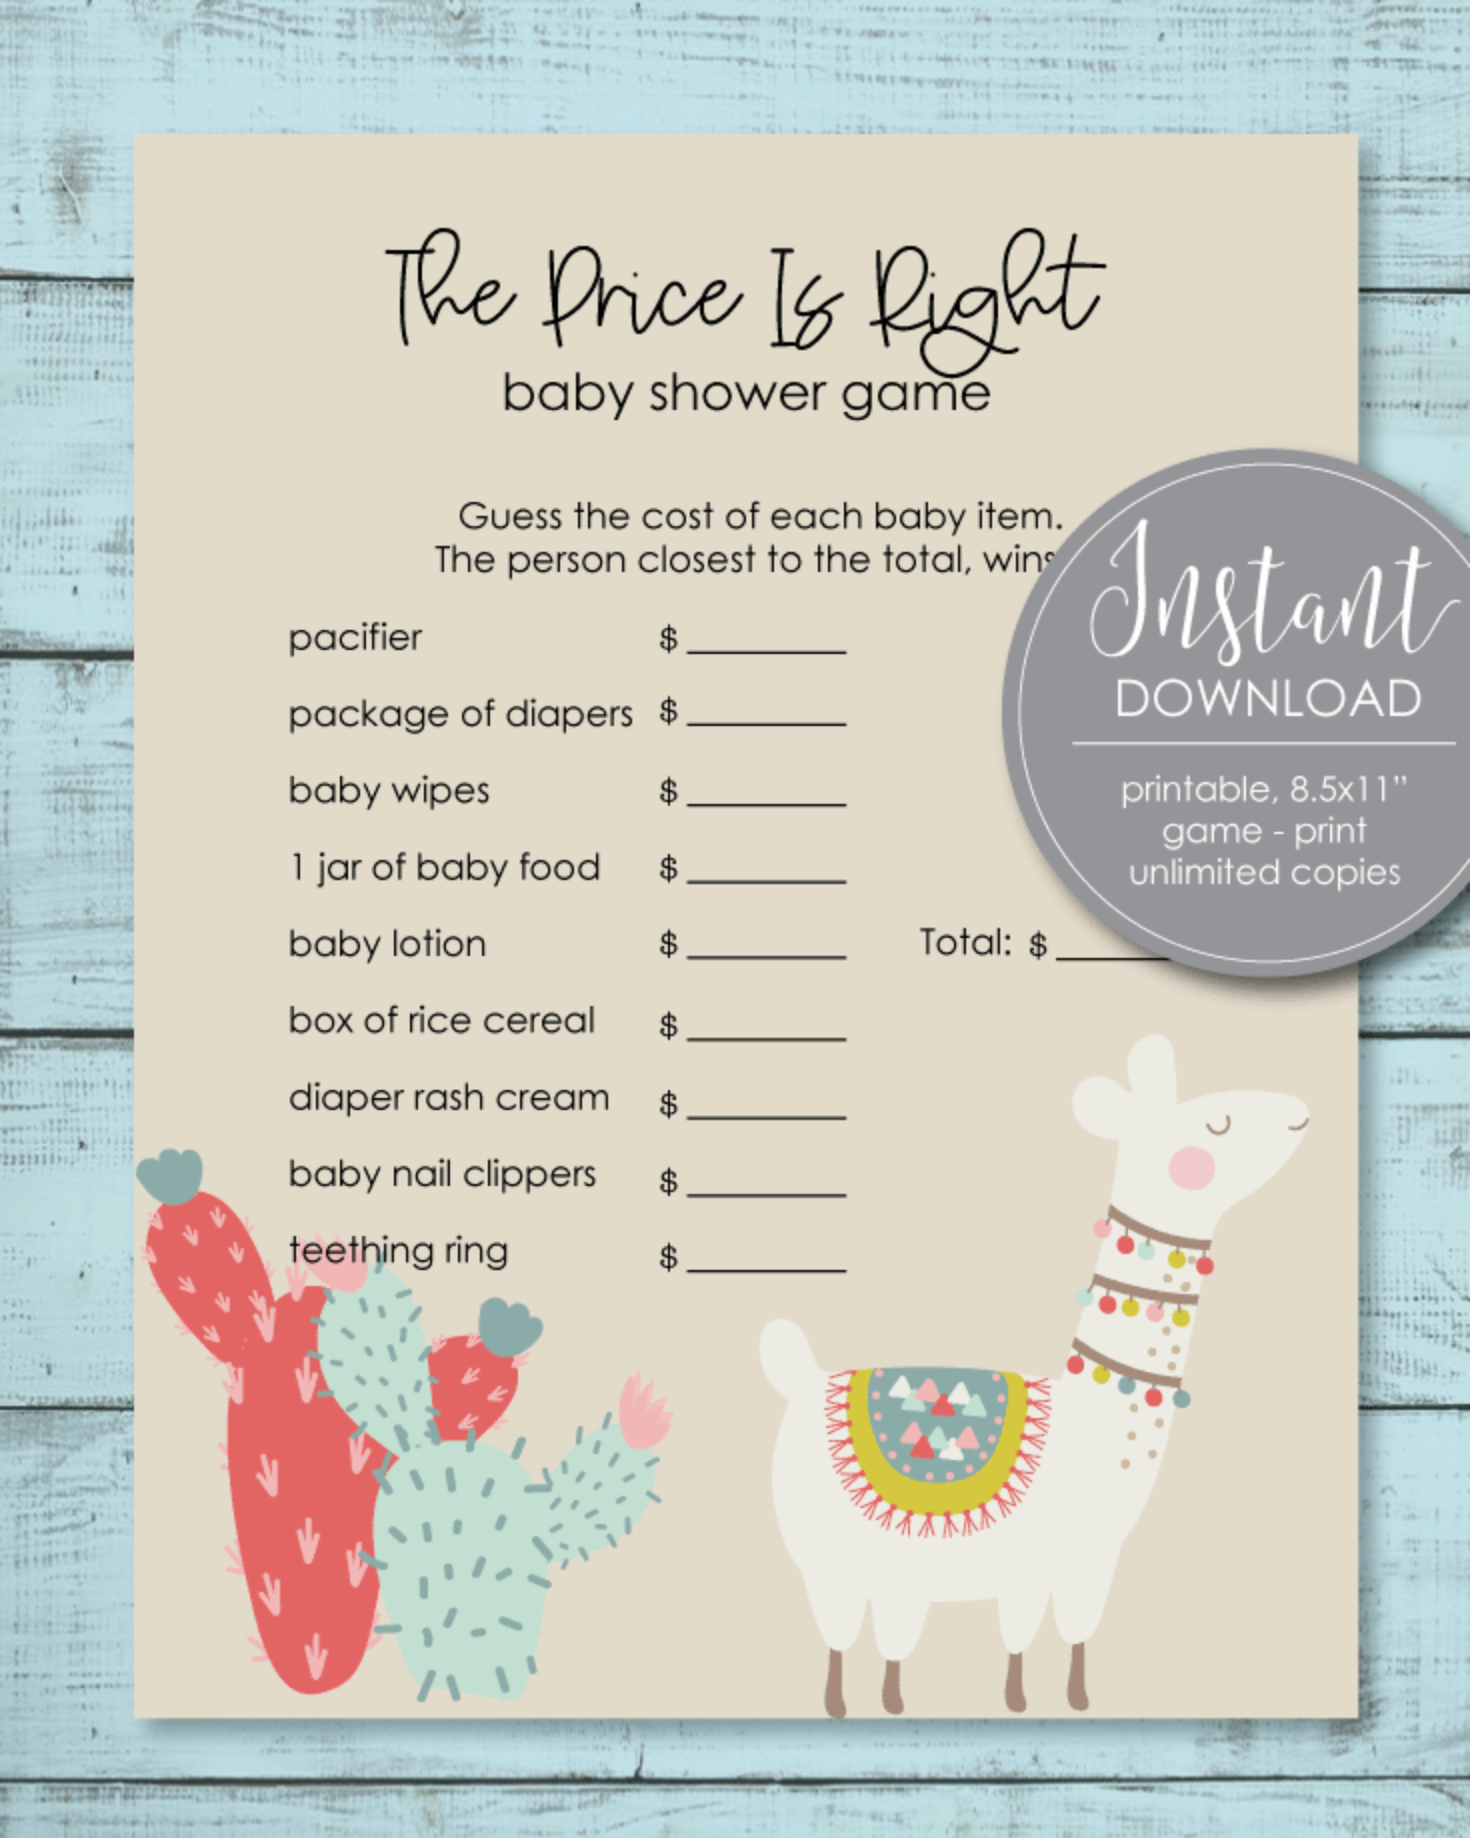 Printable The Price Is Right Baby Shower Game - Llama Cactus Boho Theme